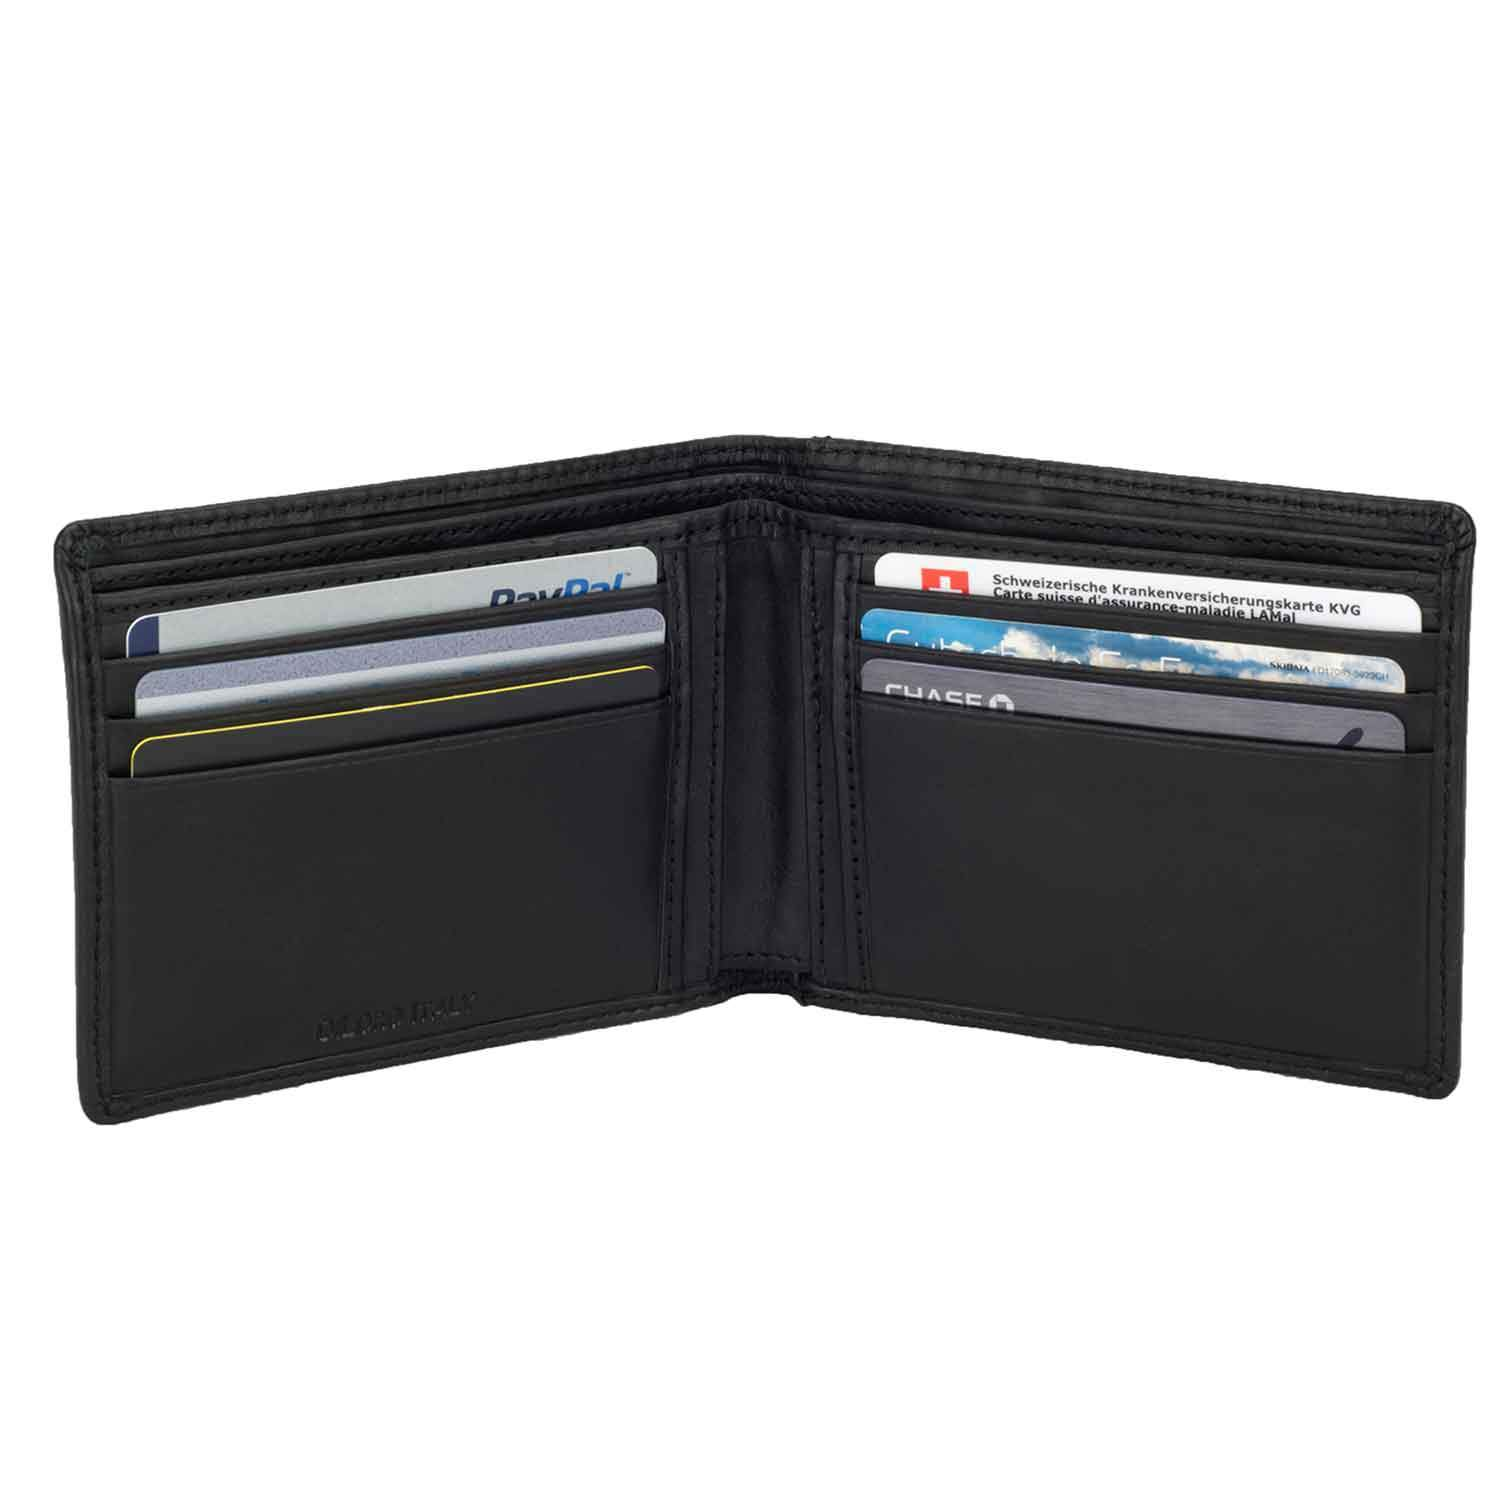 DiLoro Slim Bifold Leather Wallet with Back Slip Pocket and RFID Protection - open inside view with card (not included)